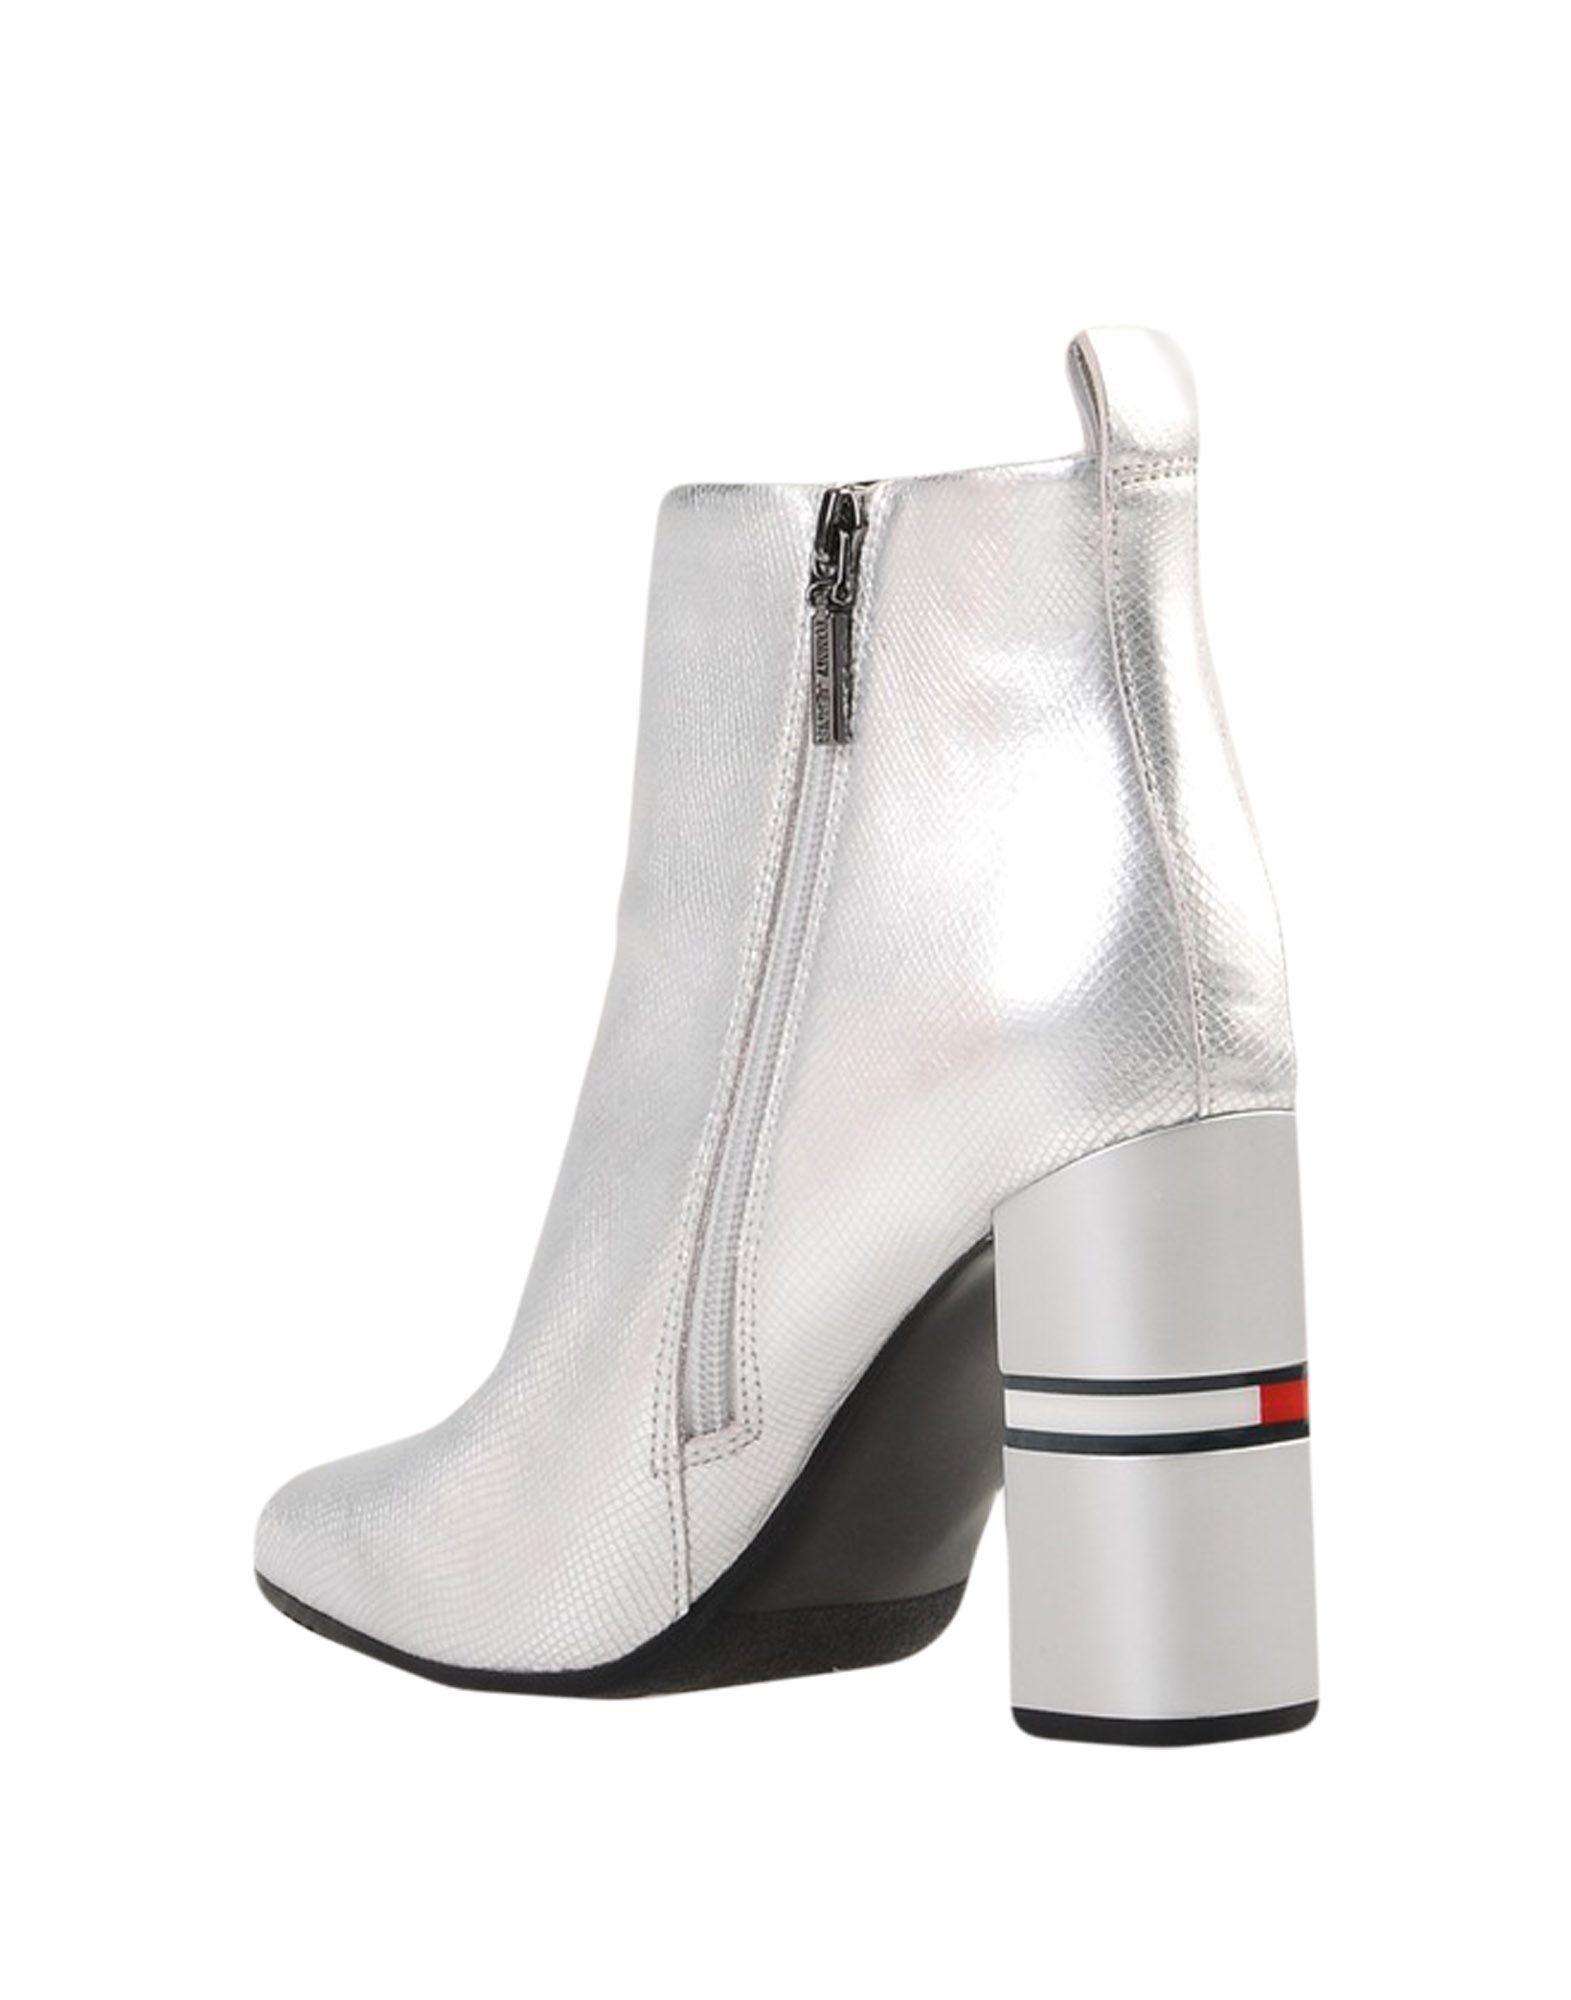 ecb7a3265dff Lyst - Tommy Hilfiger Ankle Boots in Metallic